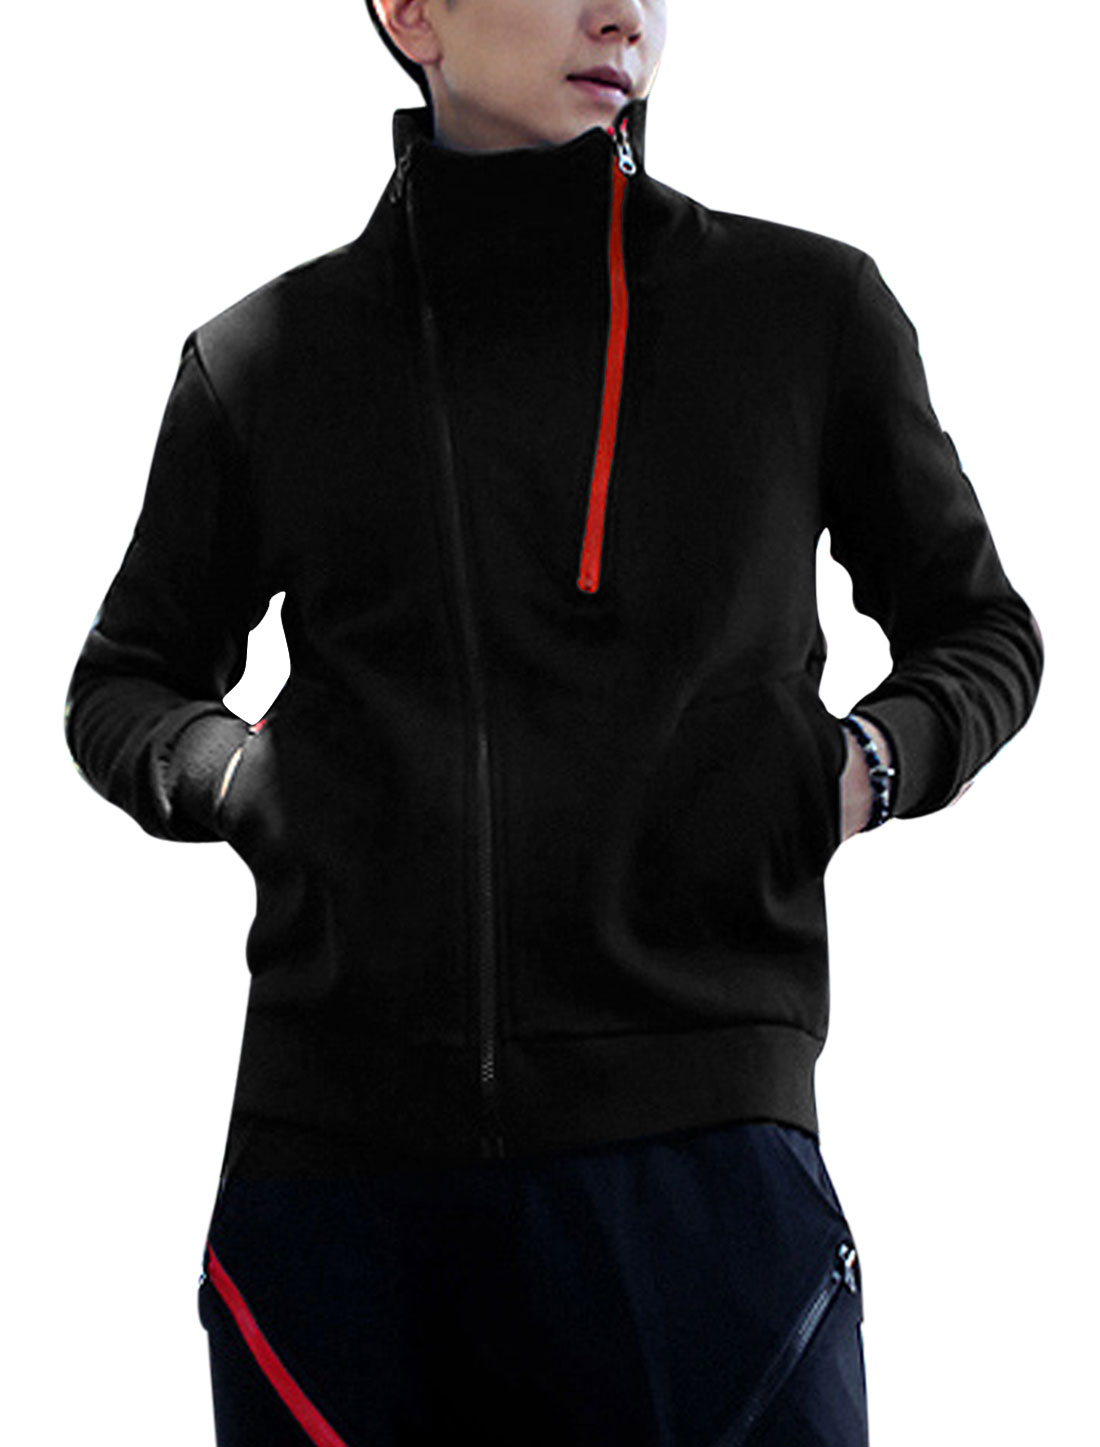 Man Zip Up Convertible Collar Sweatshirt w Elastic Drawstring Waist Pants Black S